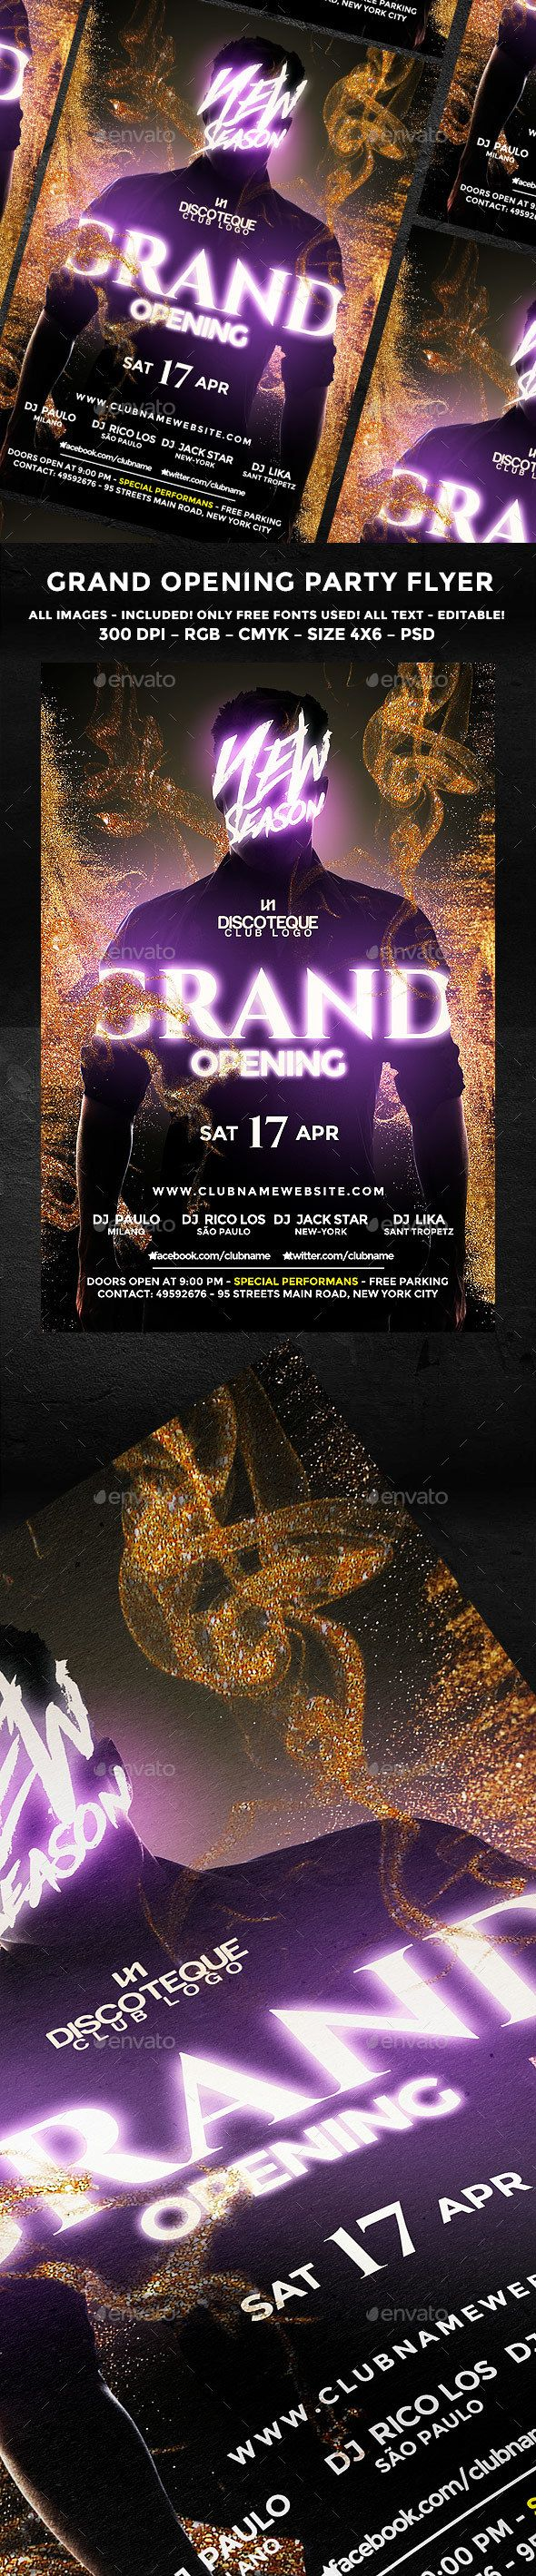 Opening Flyer — Photoshop PSD #opening #parties • Download ➝ https://graphicriver.net/item/opening-flyer/19591384?ref=pxcr